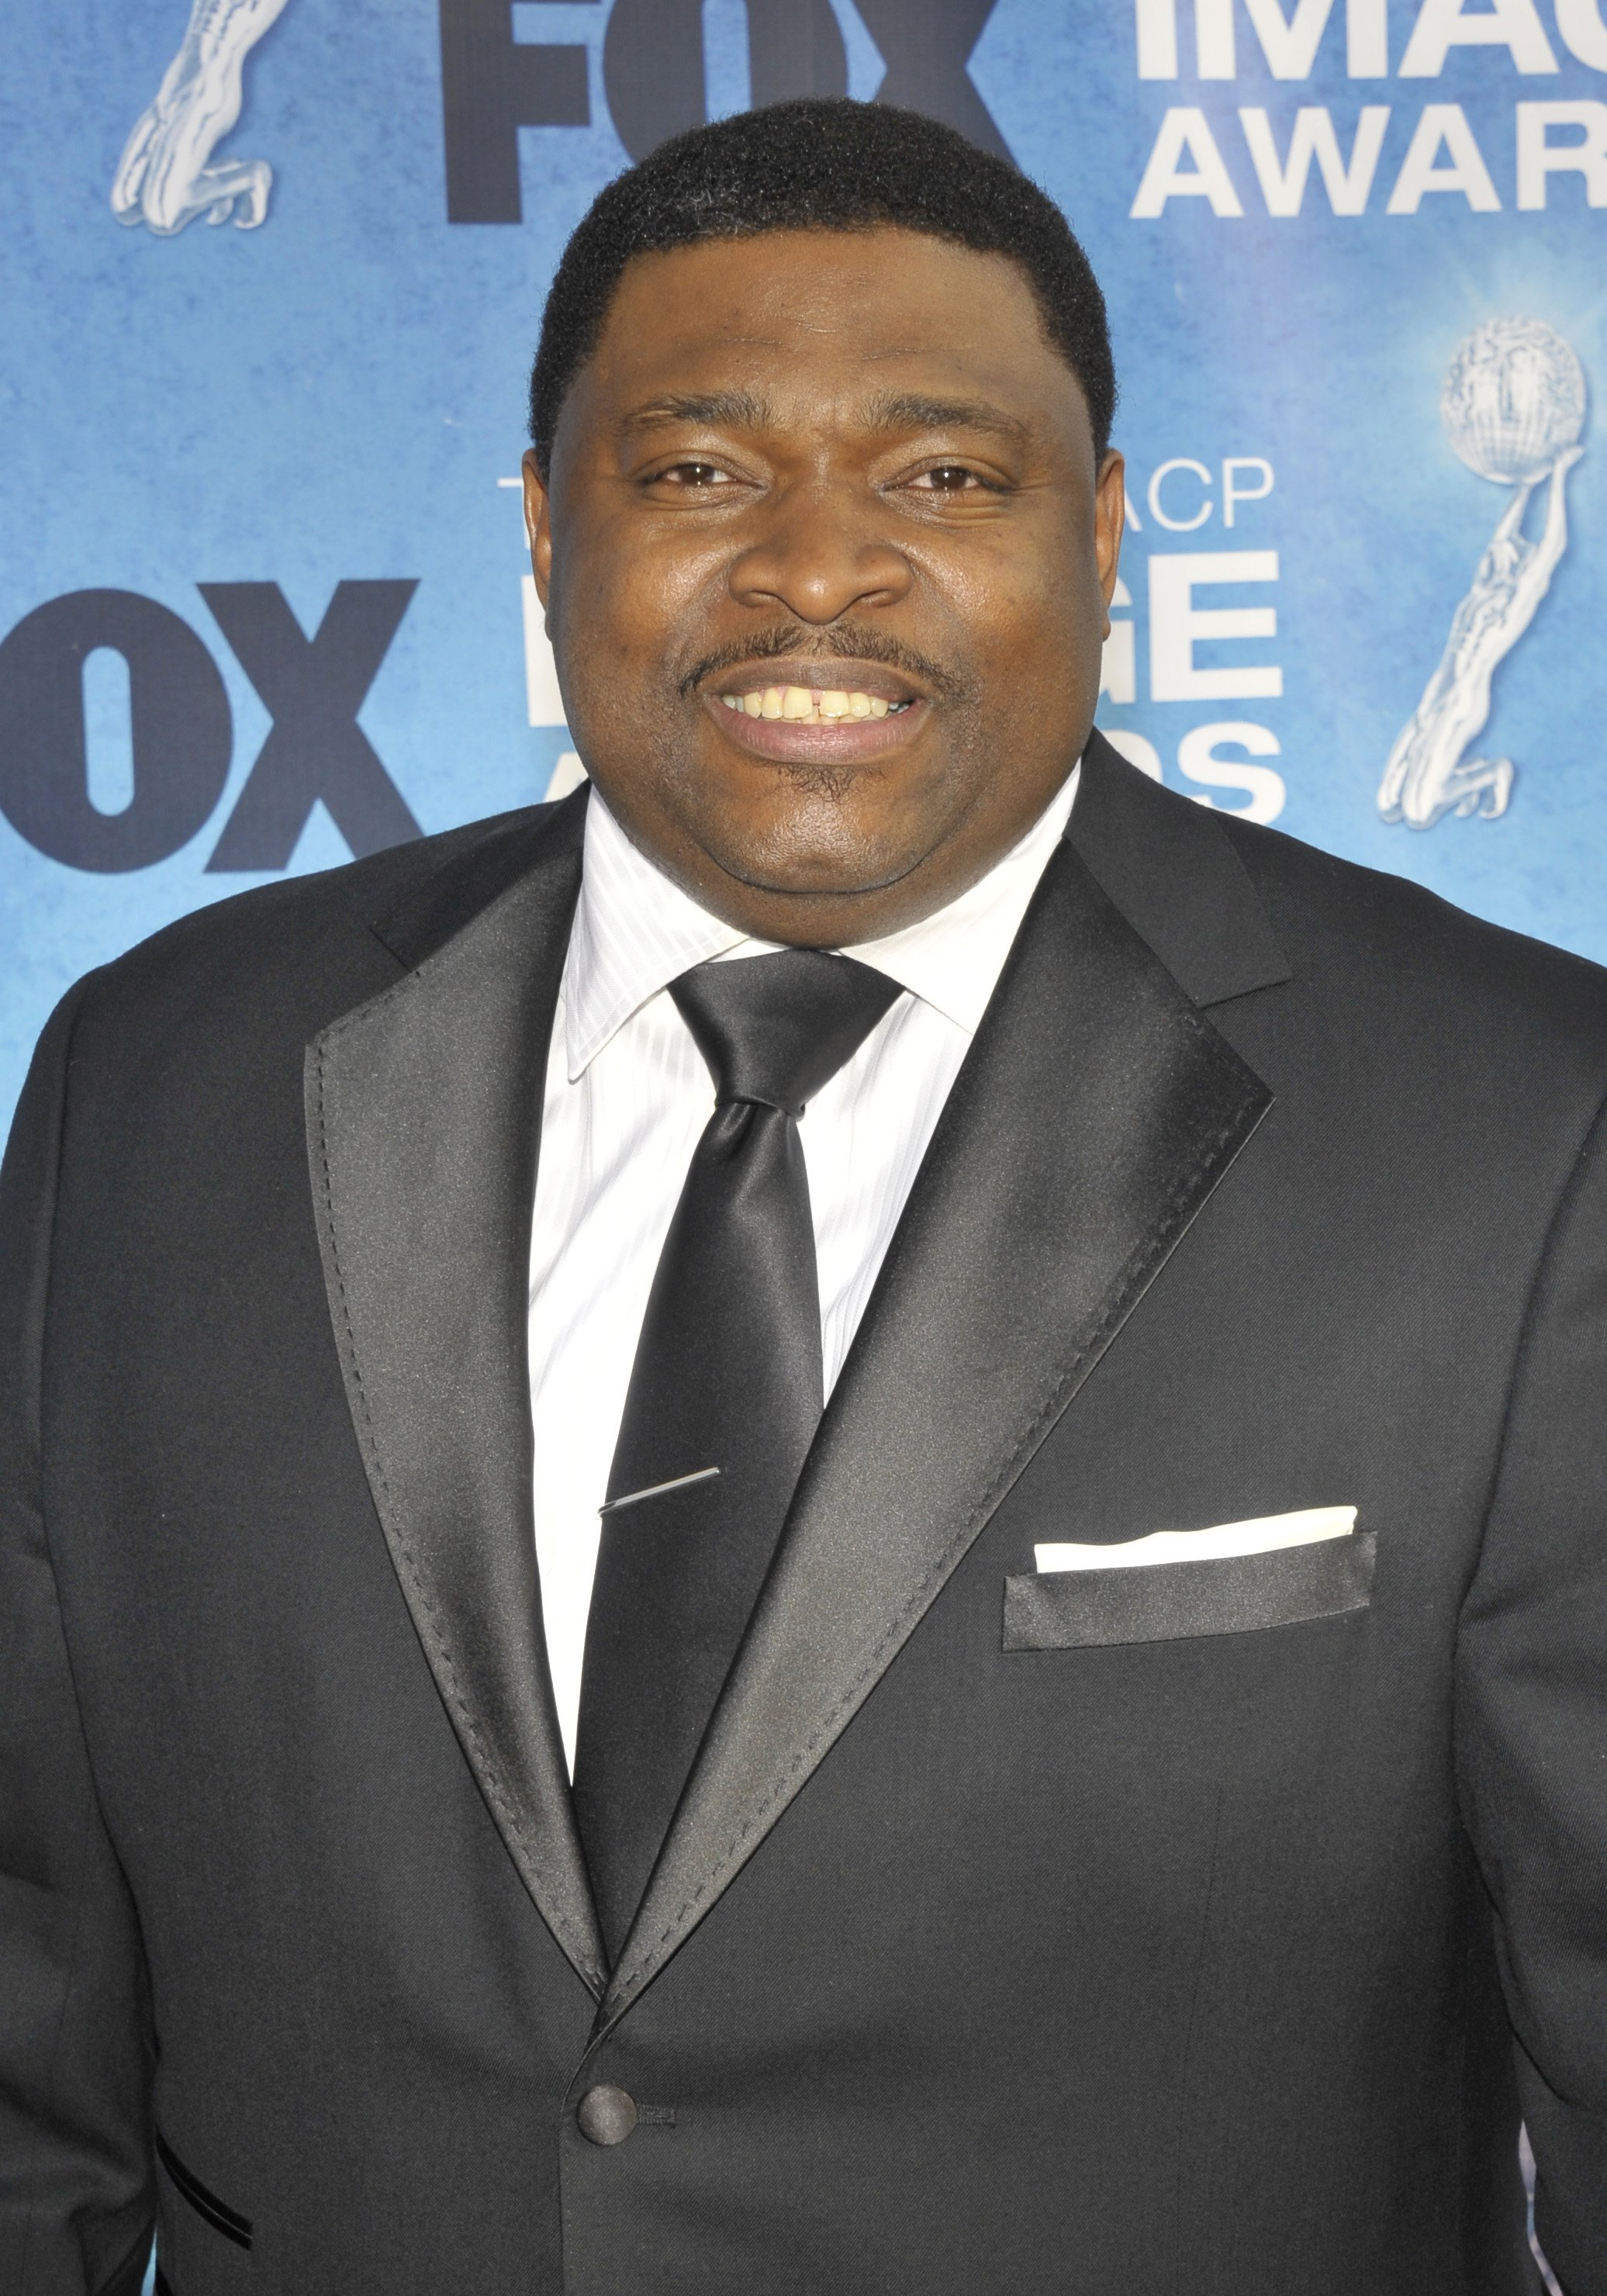 LaVan Davis on March 4, 2011 in Los Angeles, California   Photo: Getty Images